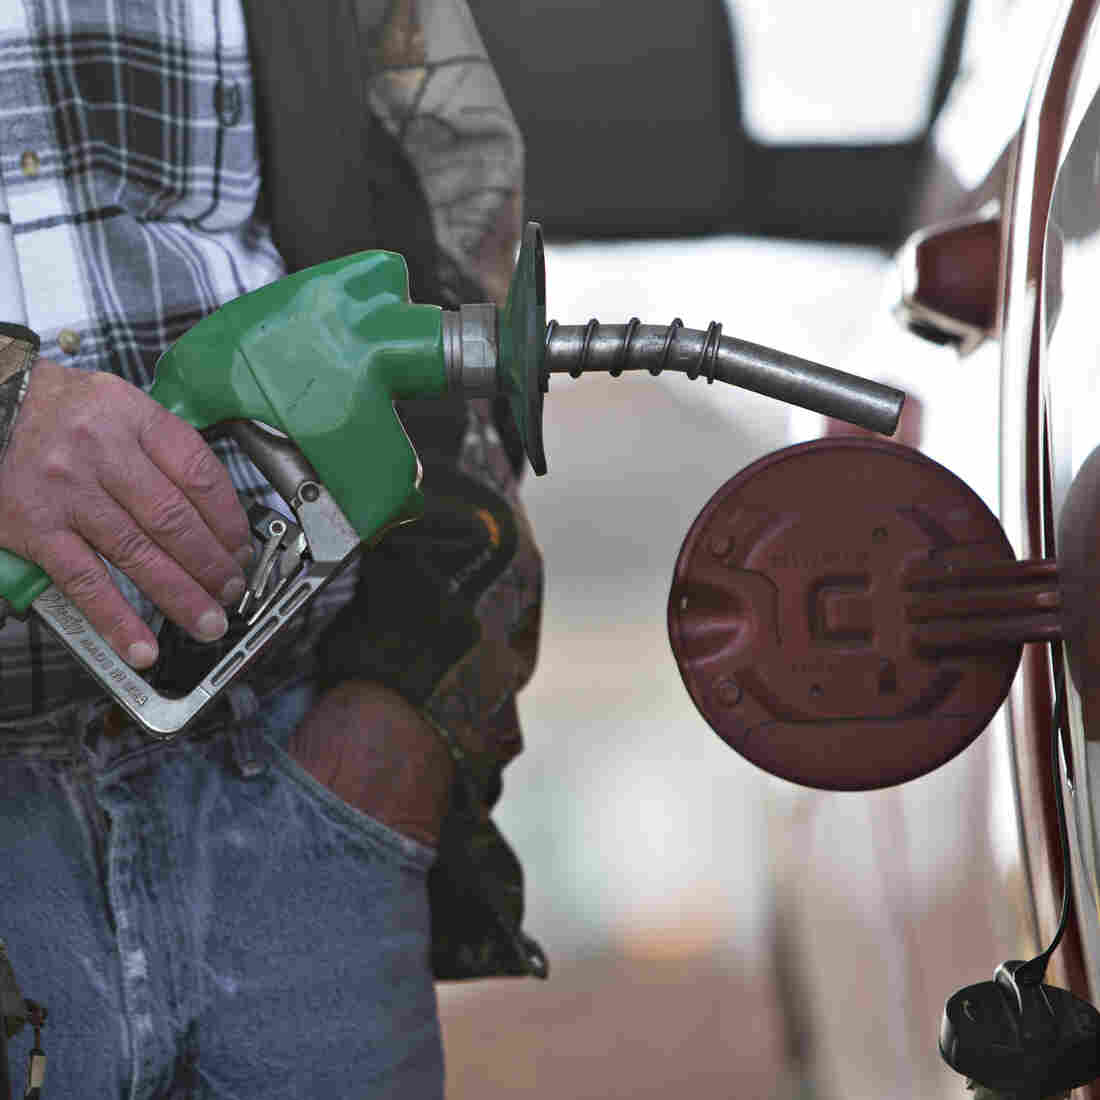 A customer fills up at a gas station in Chillicothe, Ill., in December. Low prices have meant big savings for consumers, but urban planners worry that cheap gas will encourage sprawl.